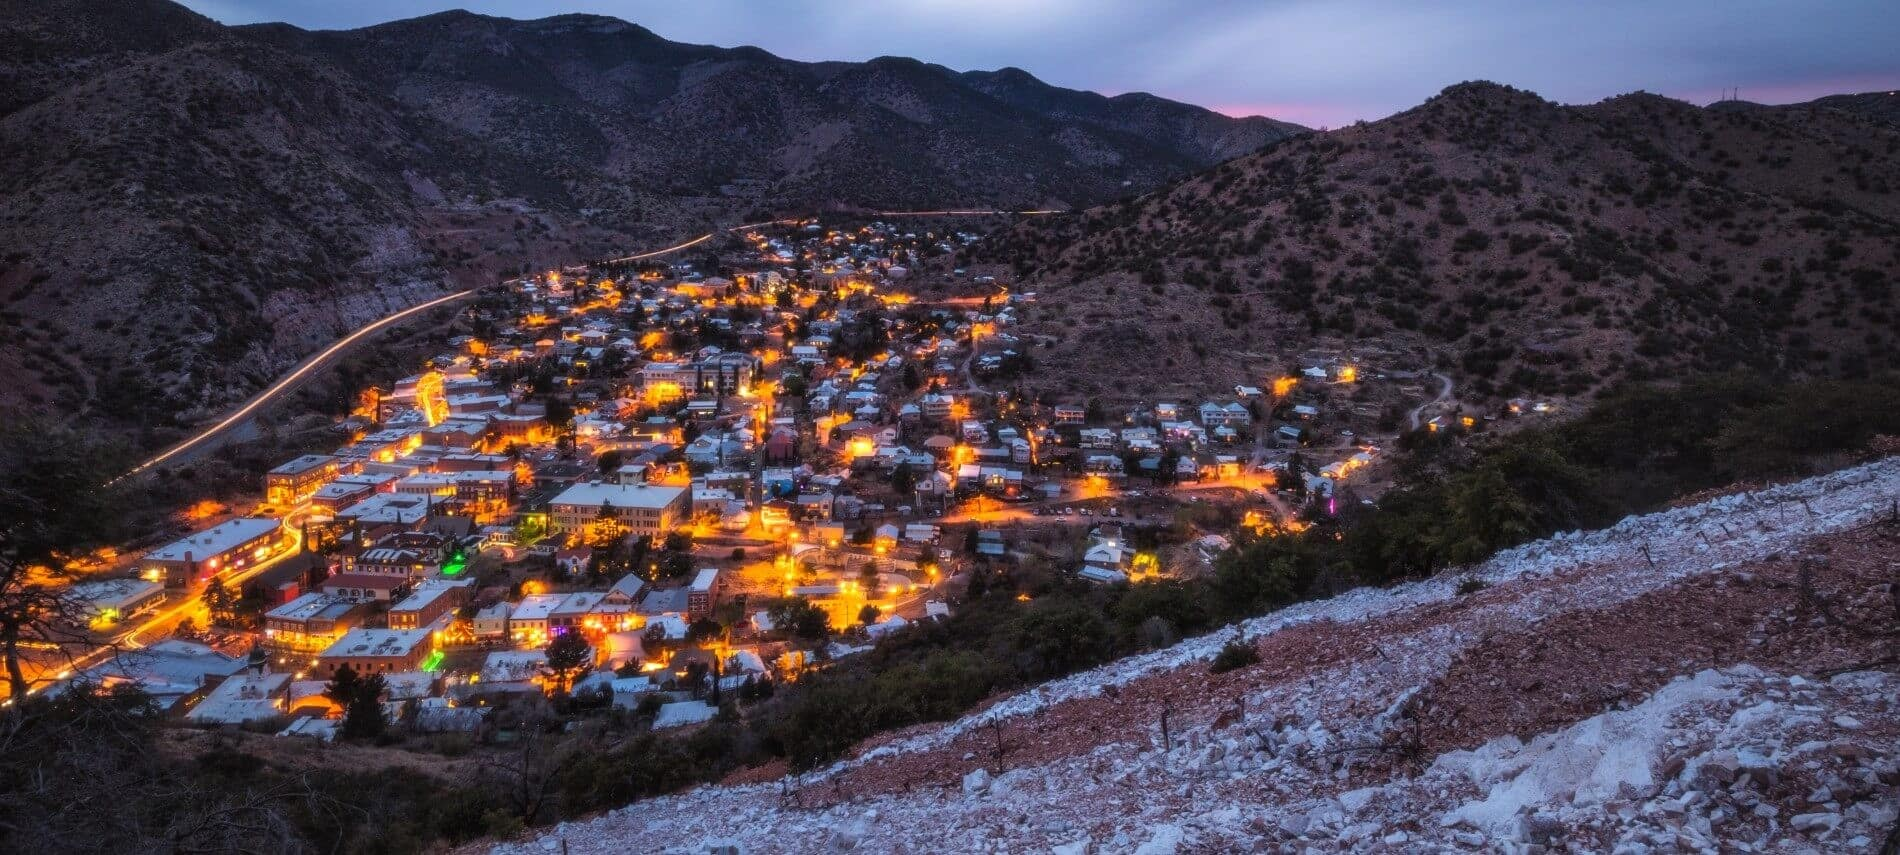 Overhead view of small town lit up at night in a valley with mountains on all sides